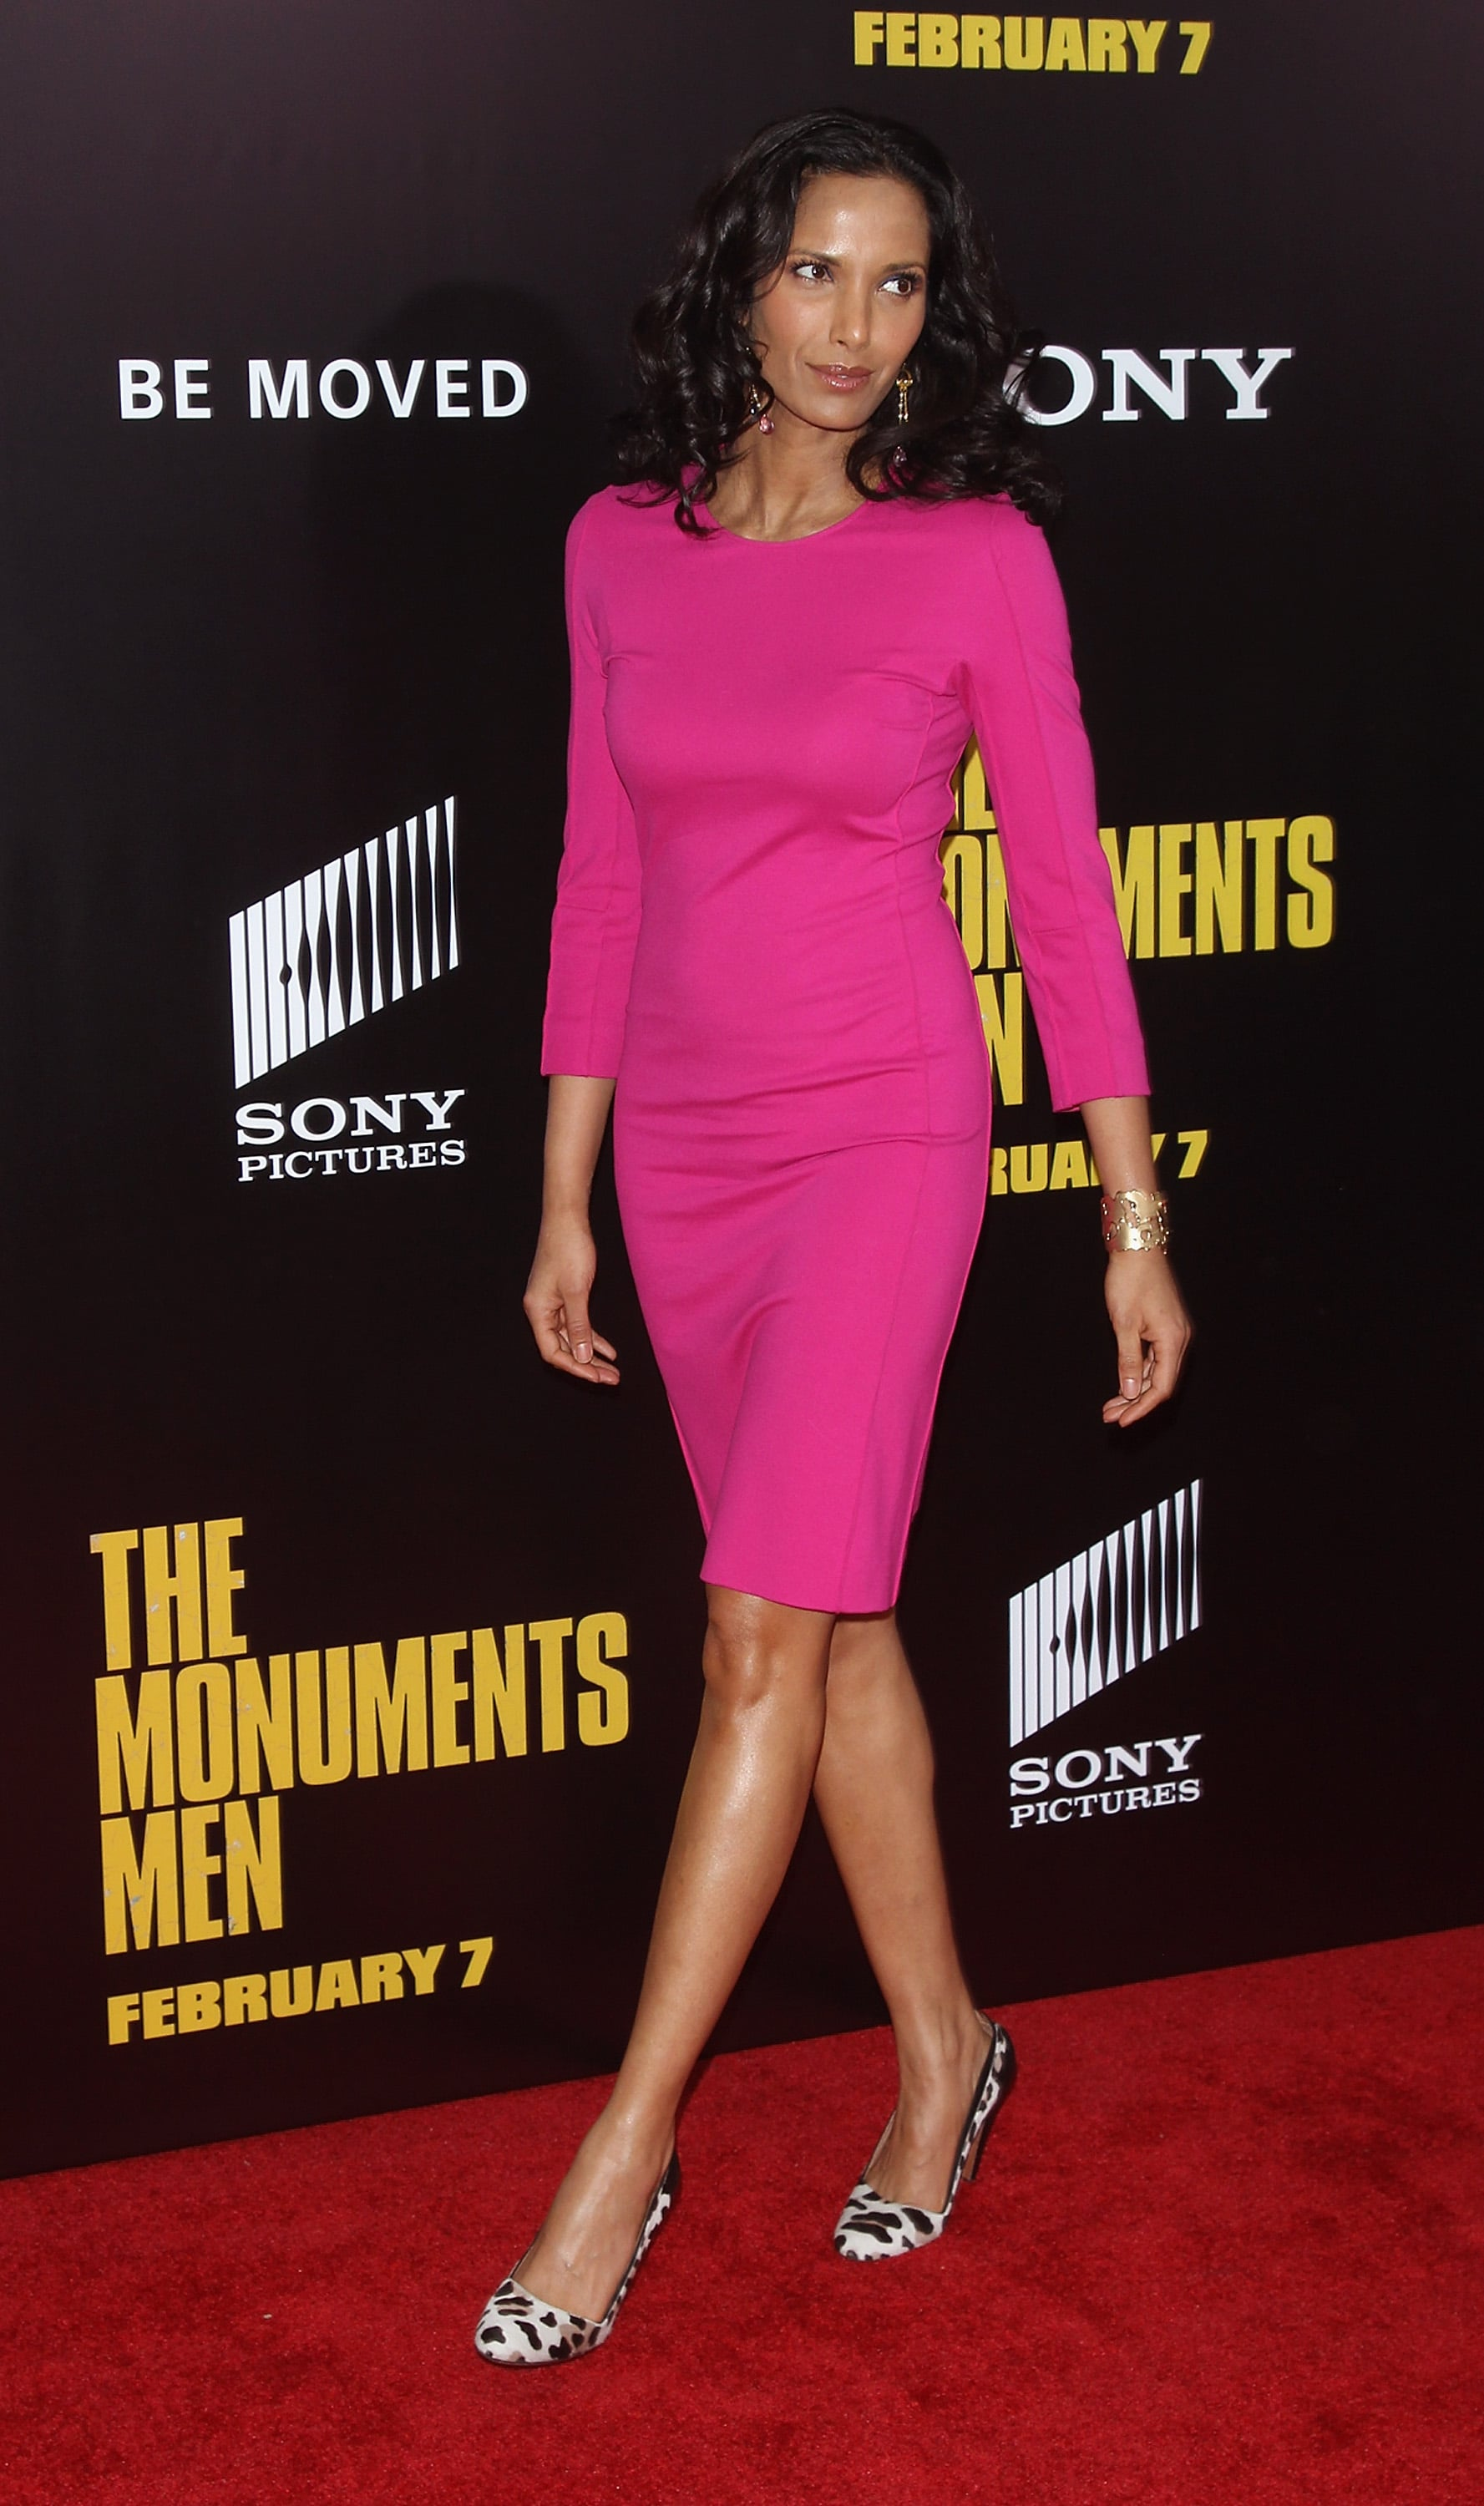 Padma Lakshmi brought some color onto the carpet.